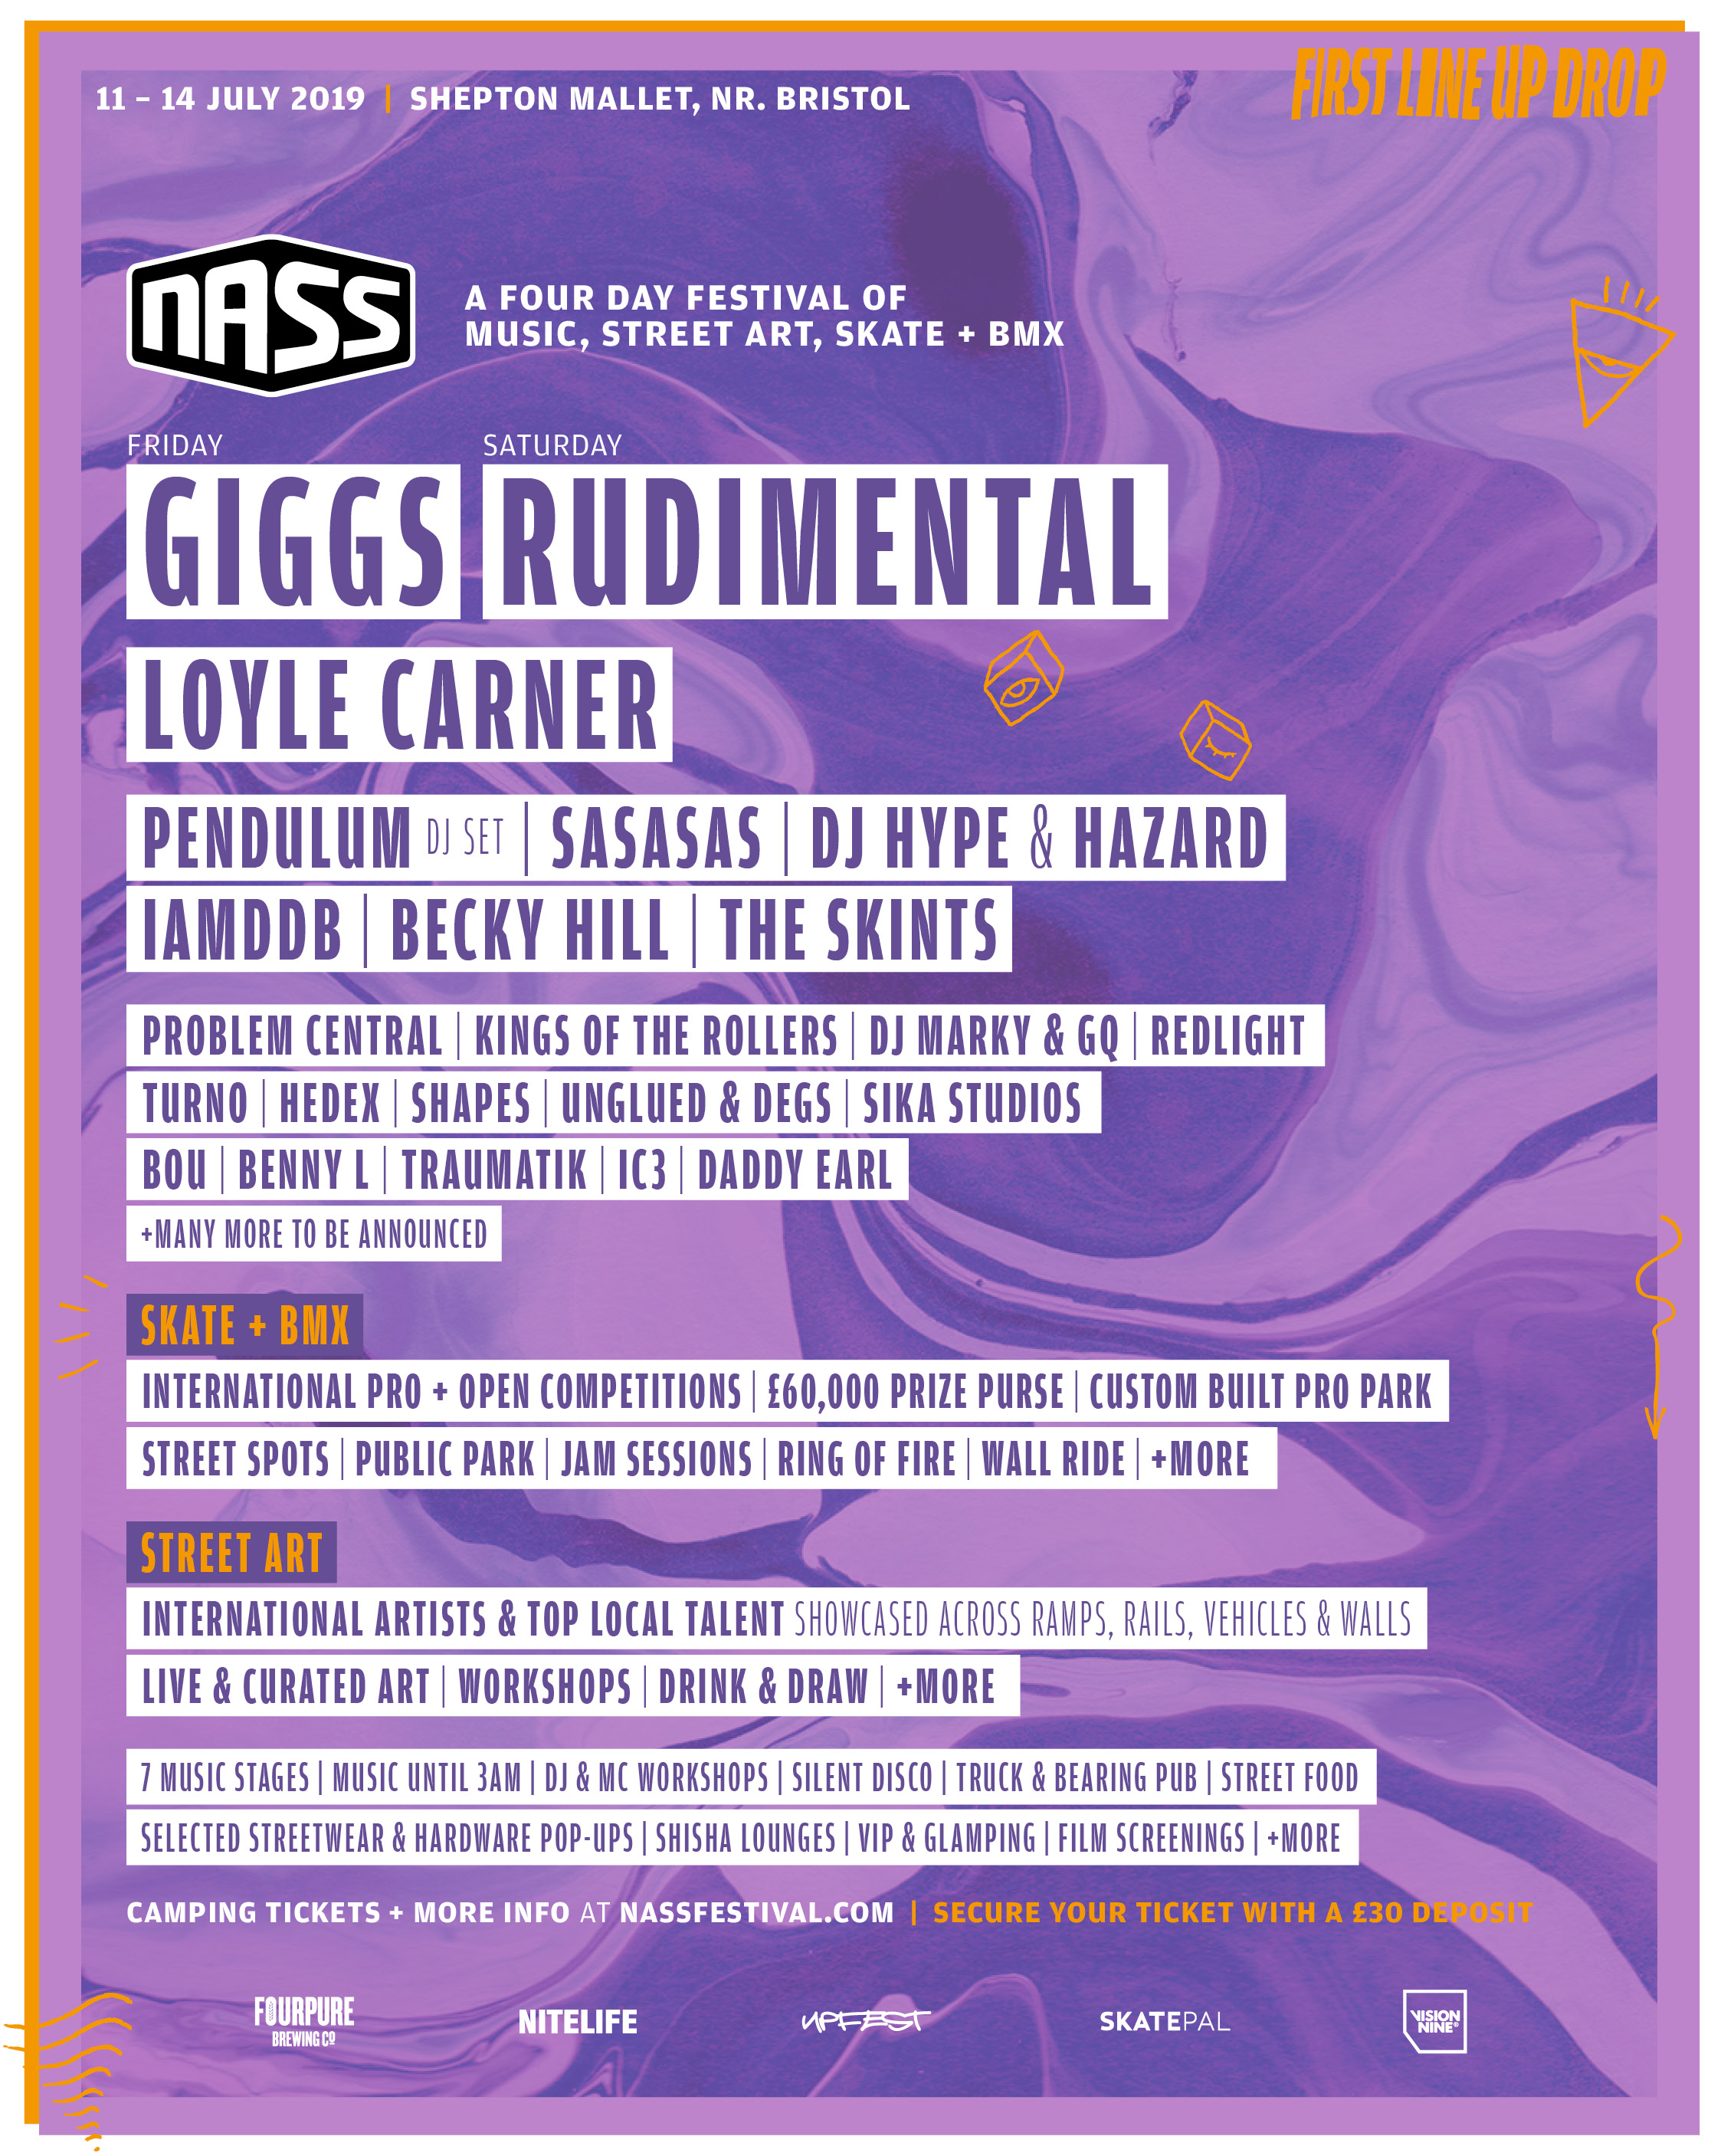 NASS19_1st Announcement_1080x1350_v10.jpg